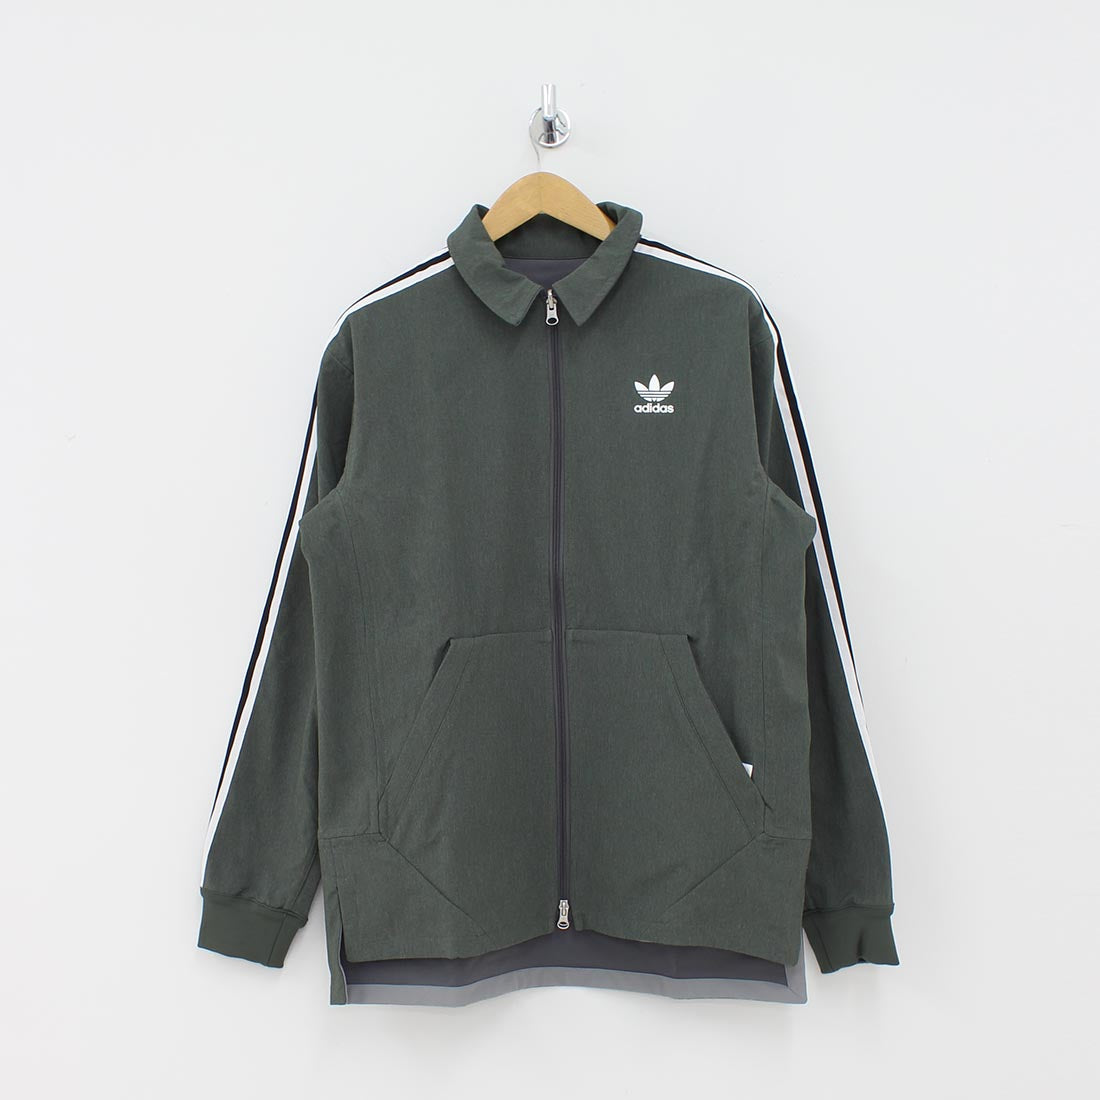 Adidas Originals 2020 Reversible Jacket Green